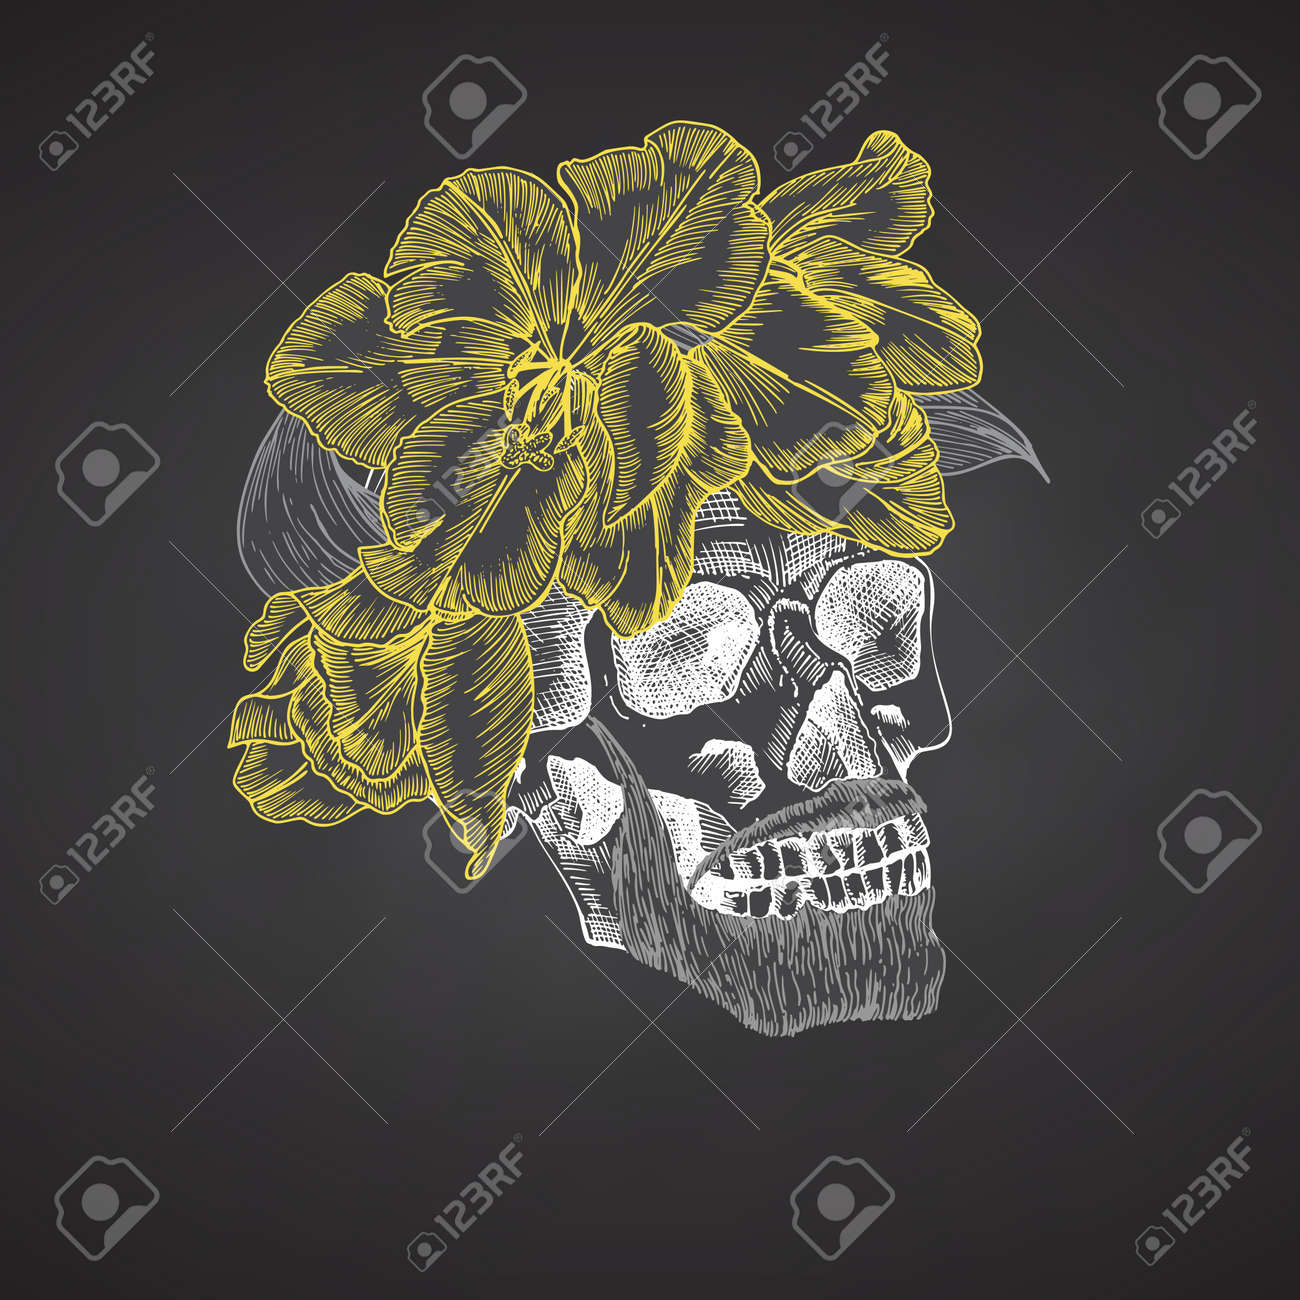 Hand drawn sketch human skull with beard and mustache in wreath of flowers. Yellow tulips Funny character Chalk graphic Engraving art isolated on chalkboard background. Vintage style. Vector - 161190920